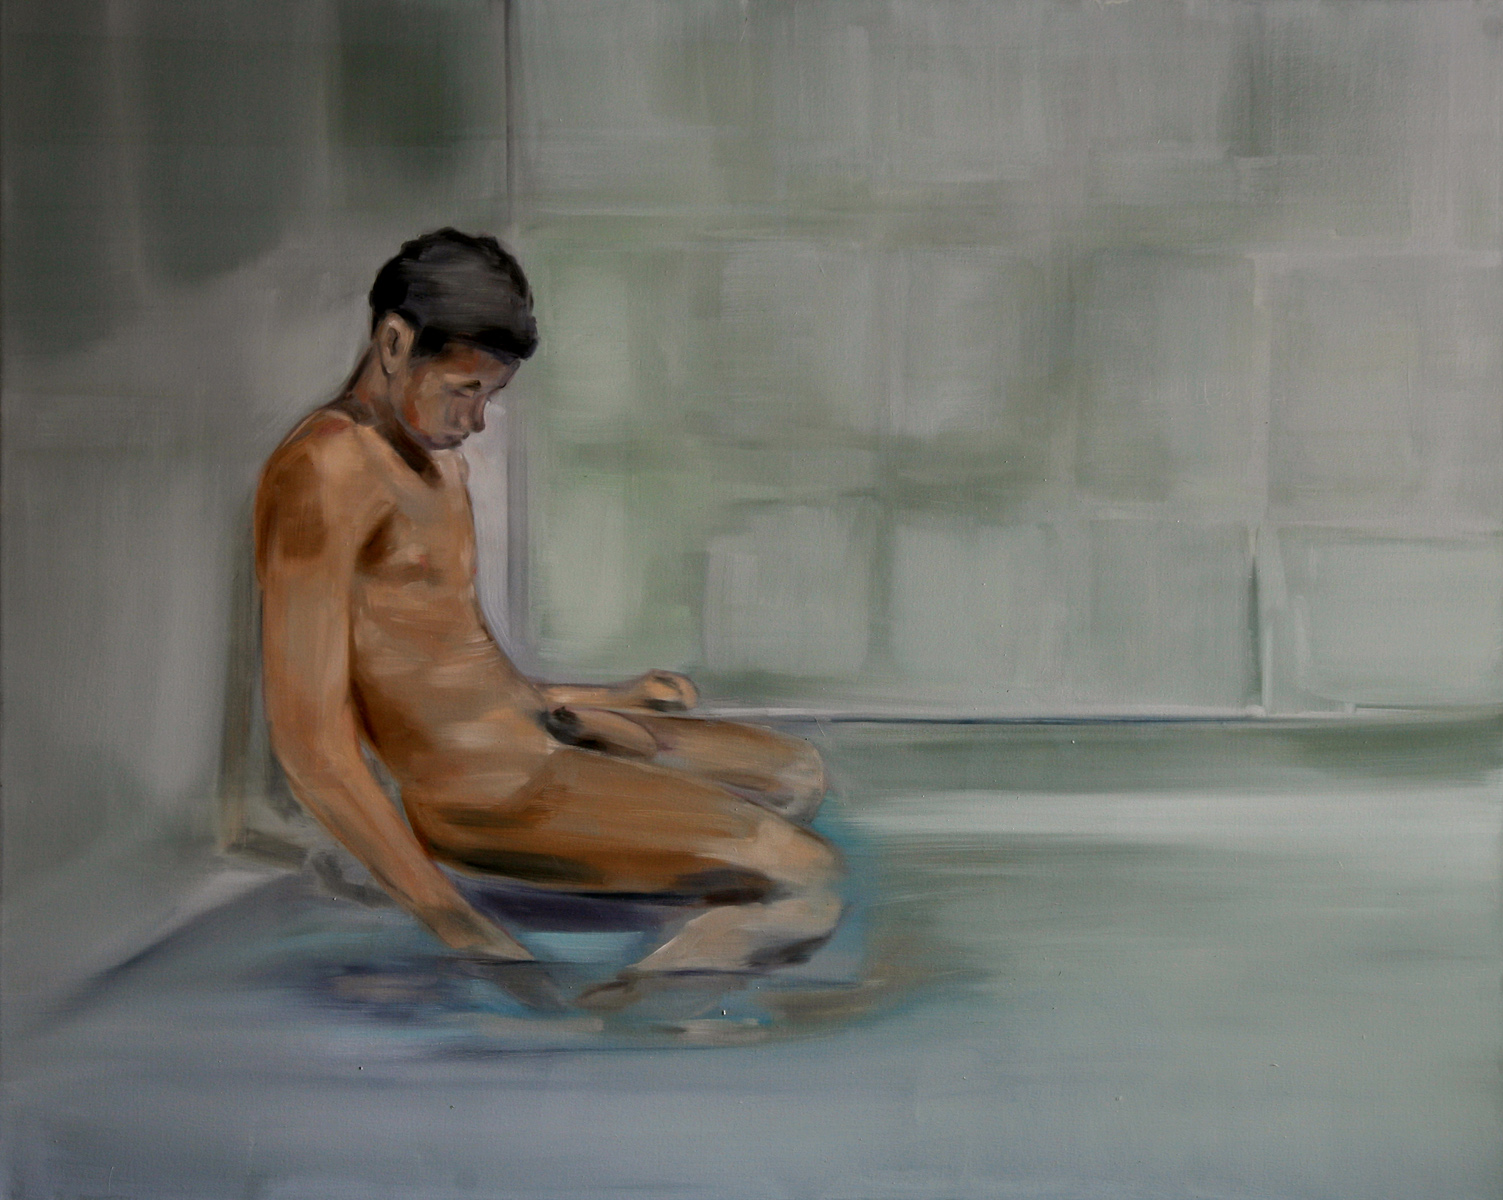 Untitled (Boy in Sauna)